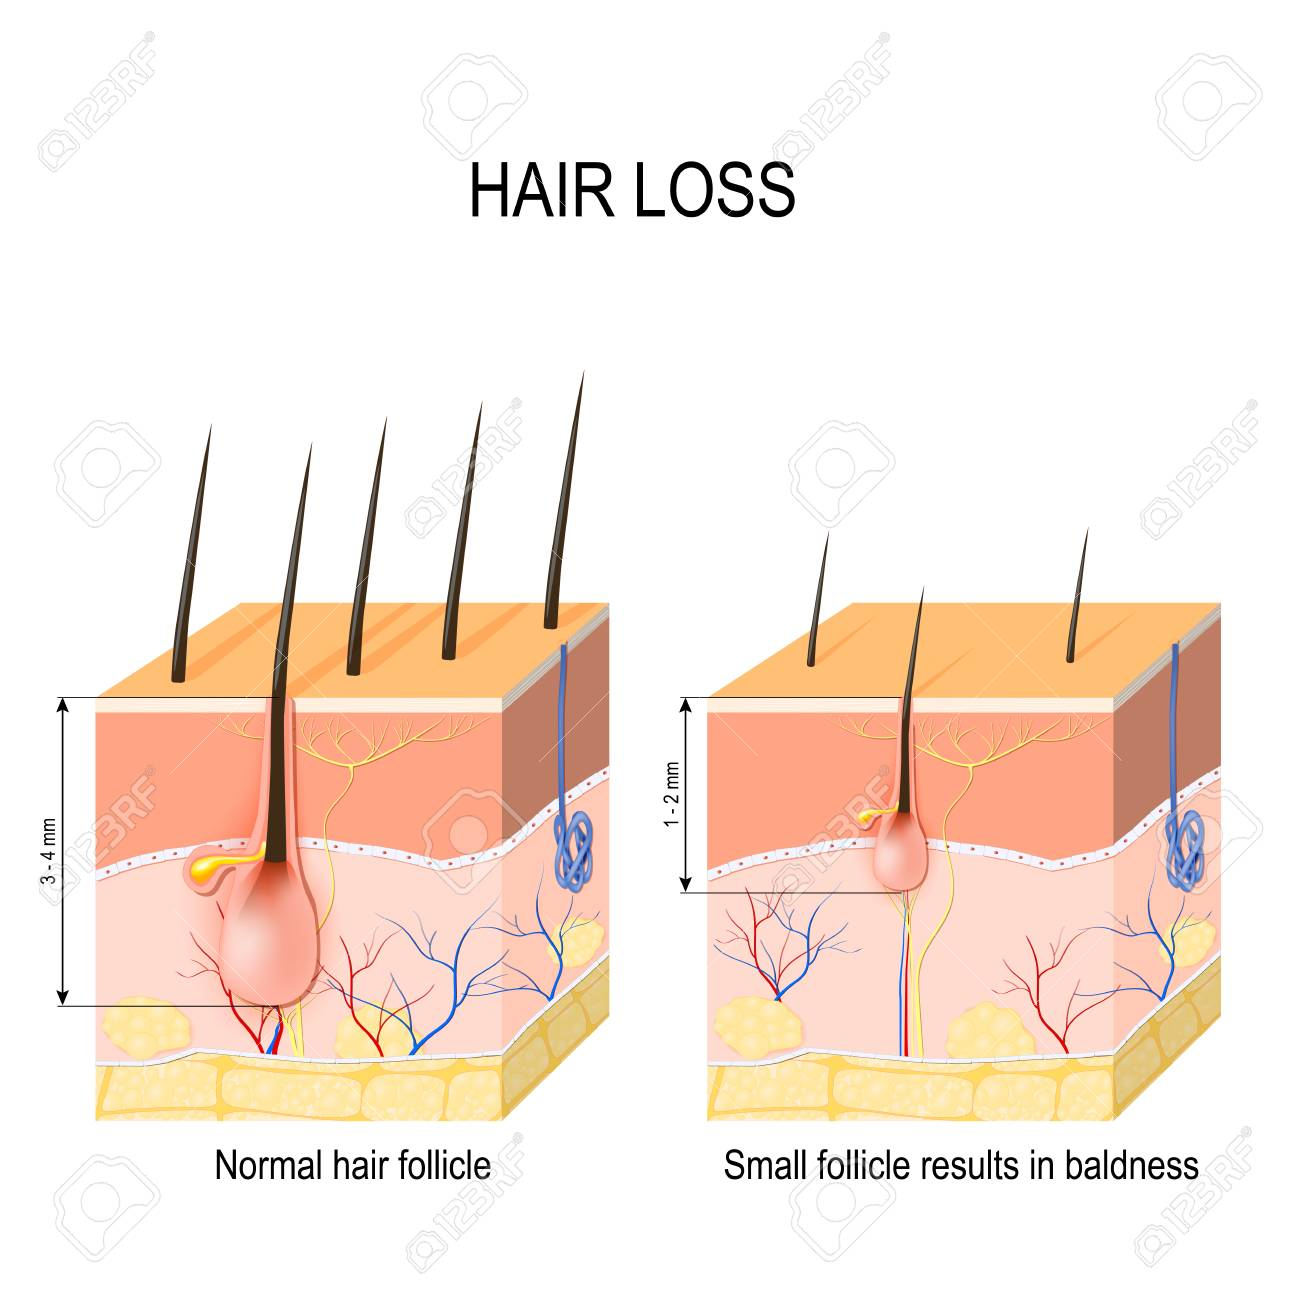 hight resolution of hair loss baldness normal hair follicle and skin with alopecia alopecia skin diagram